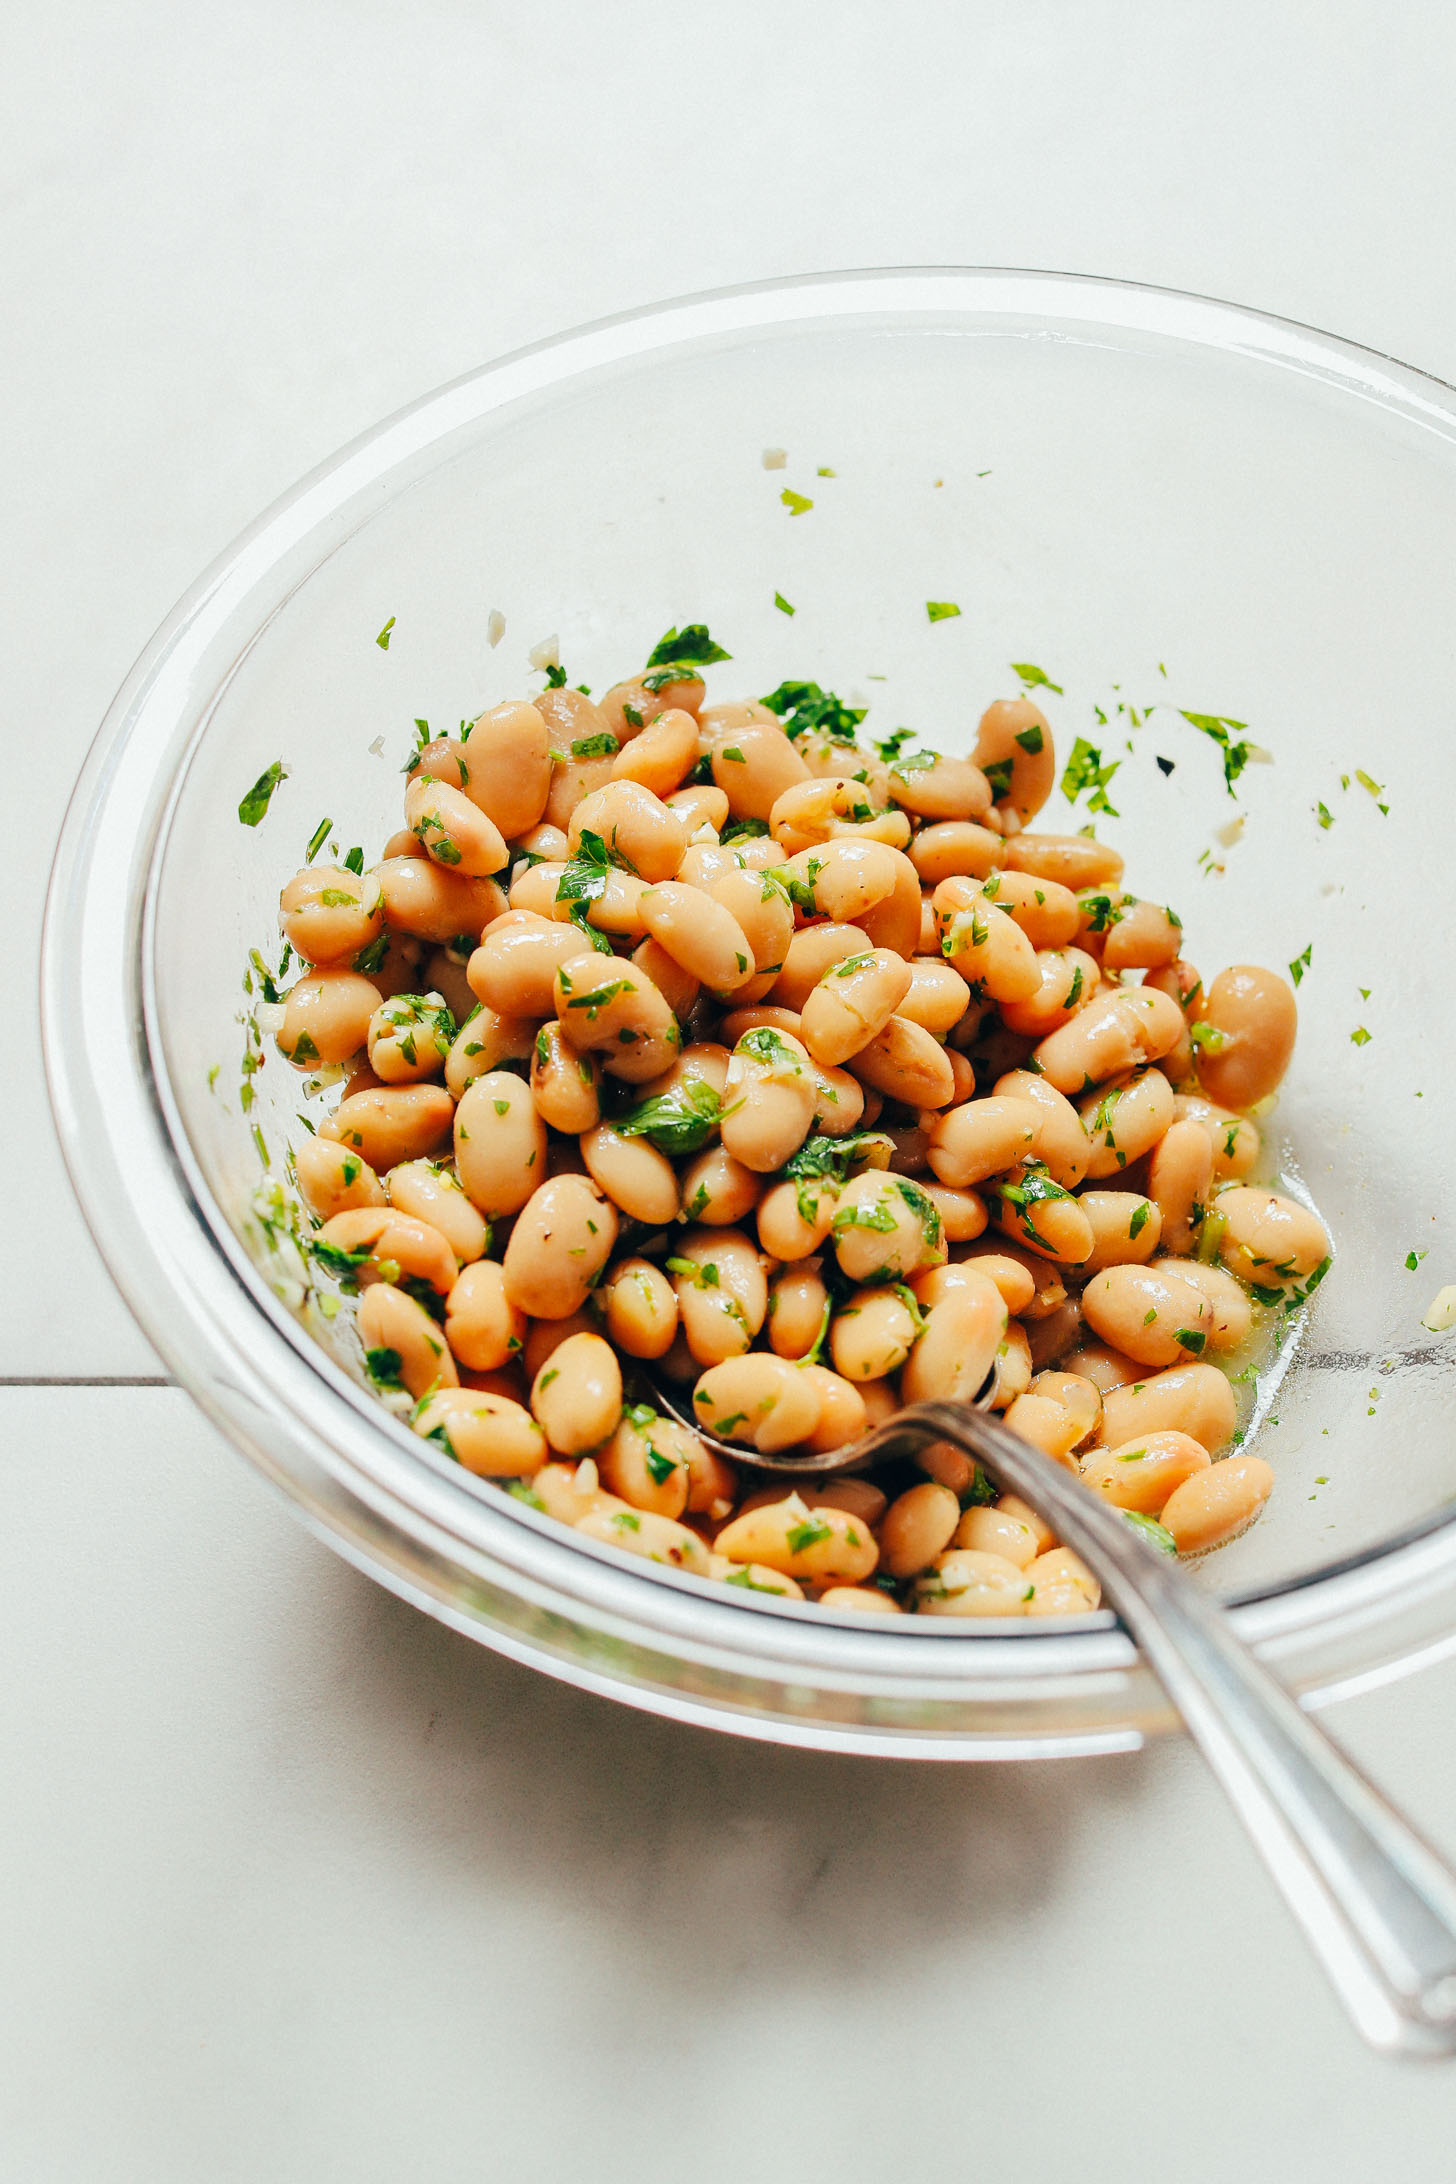 Bowl of Herbed Beans for topping our Grilled Romaine Salad recipe